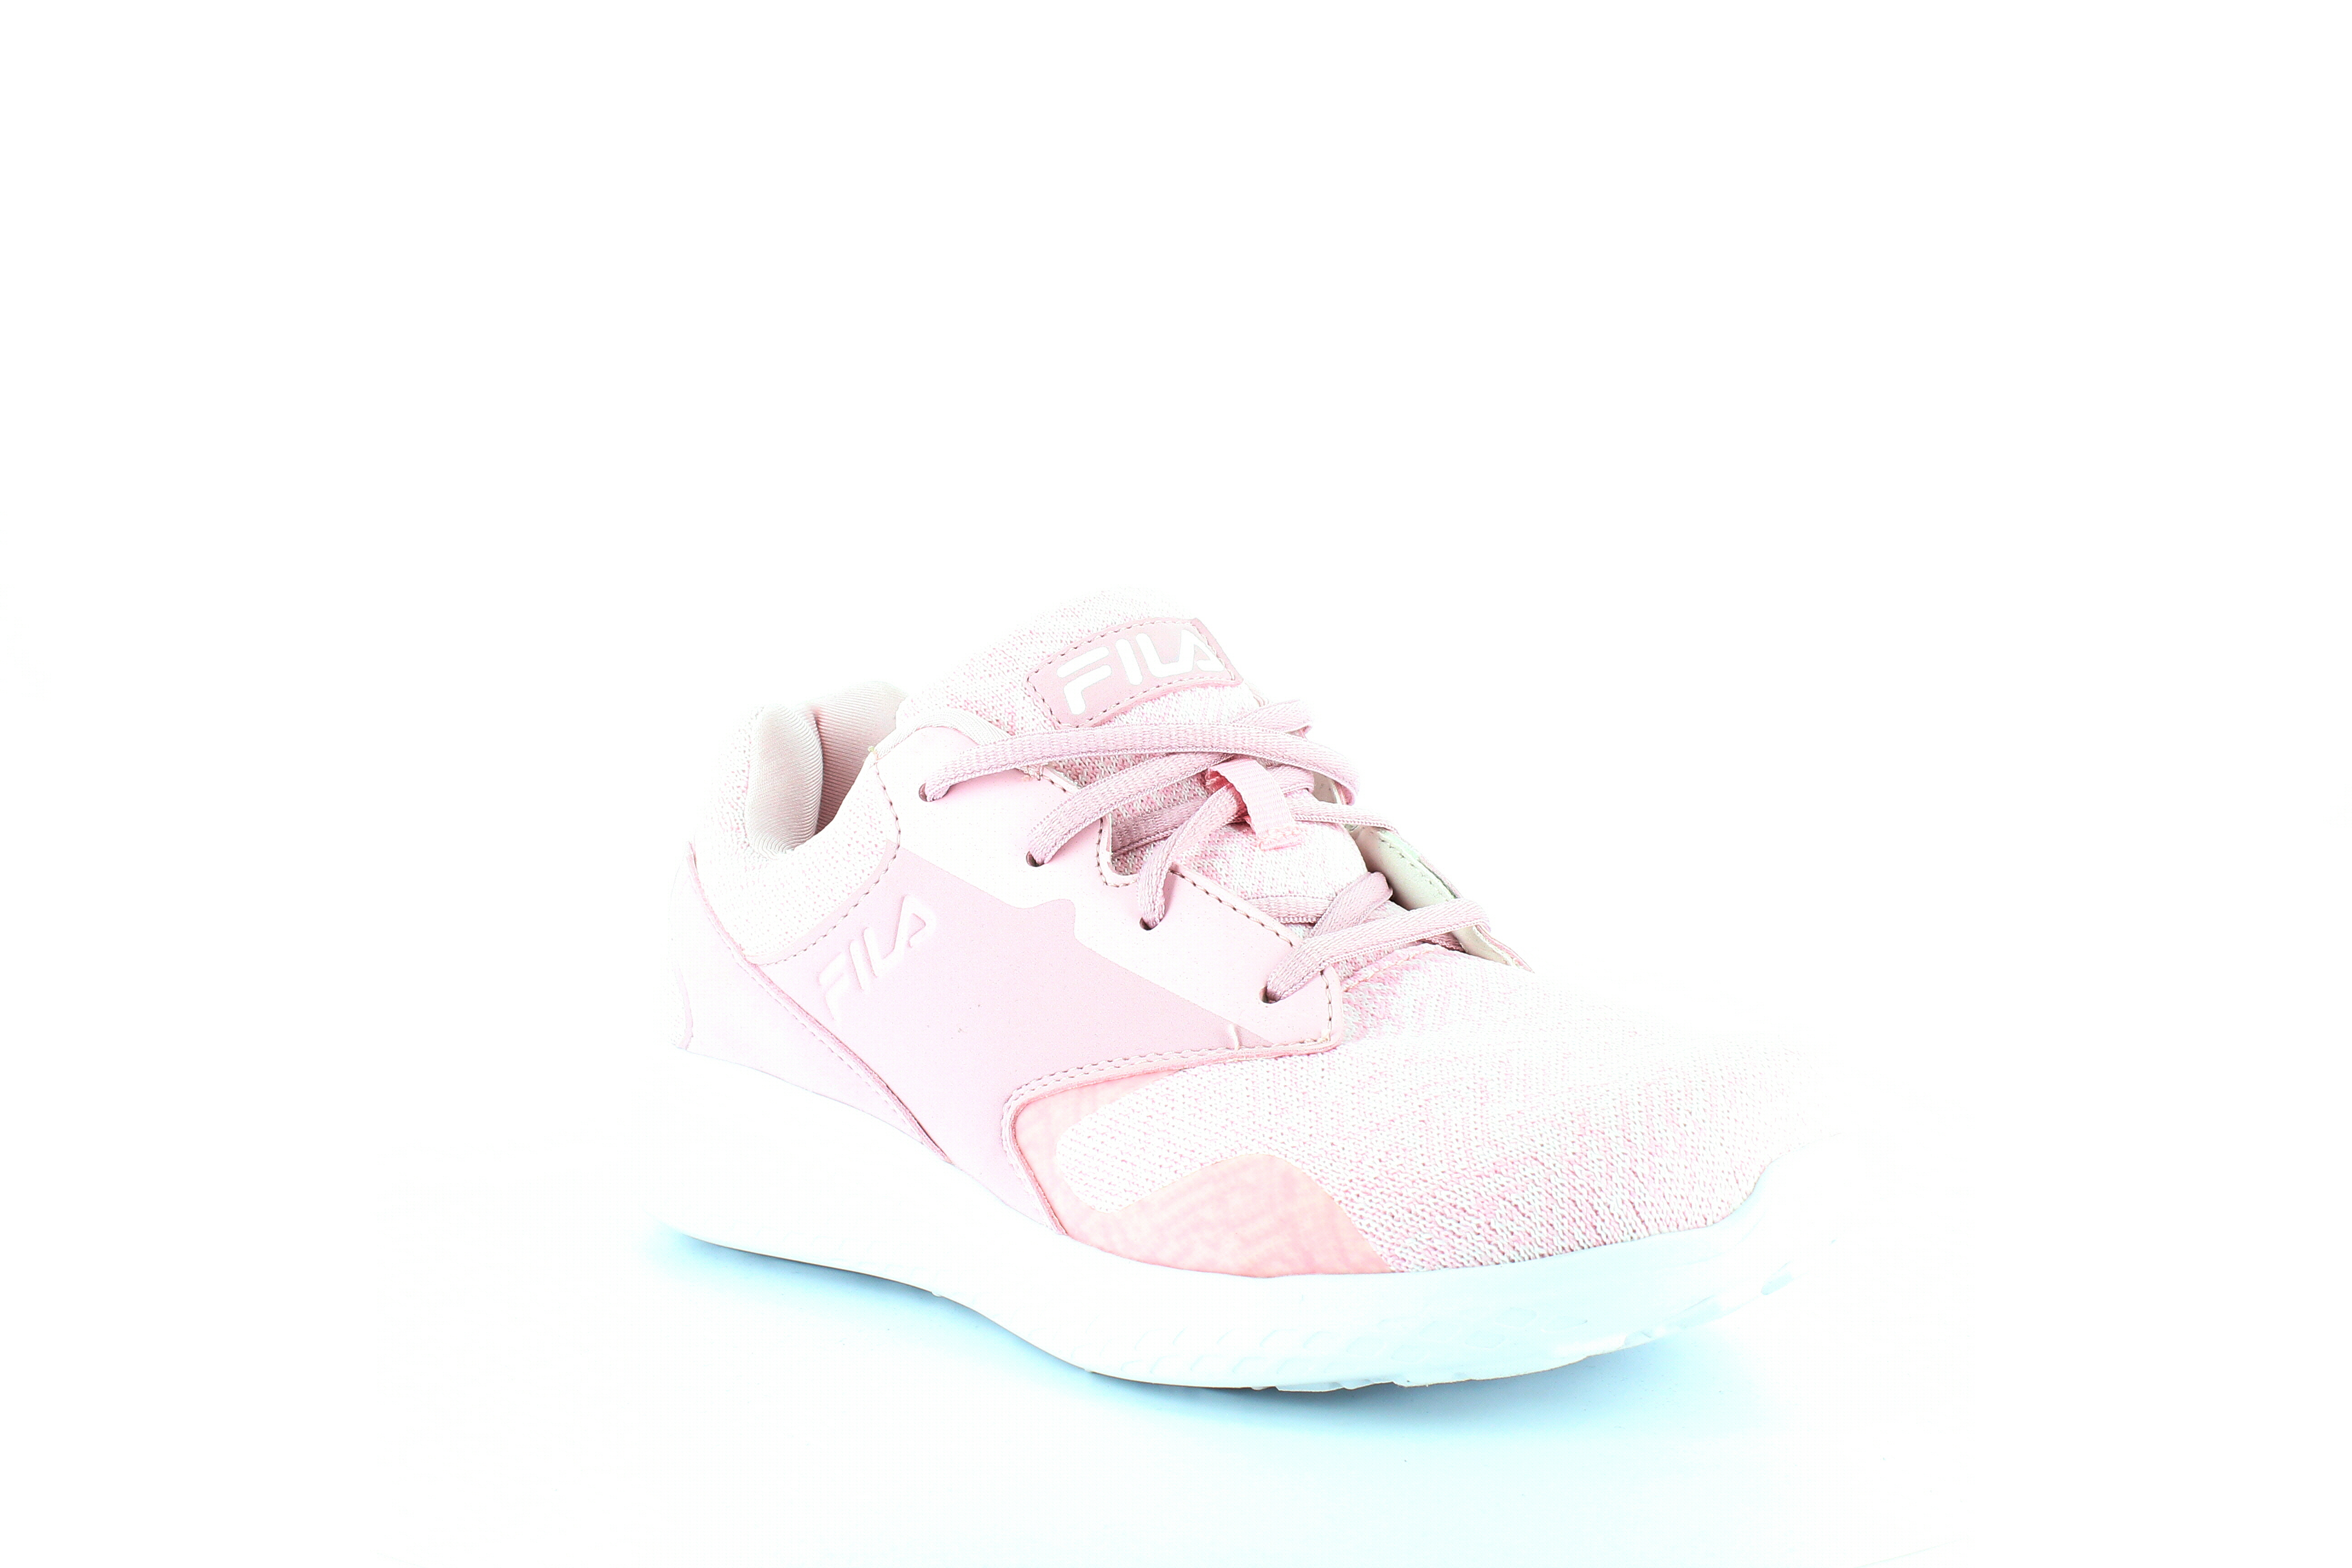 Details about Fila | Layers 2.5 Knit Sneakers | Pink | 10 M